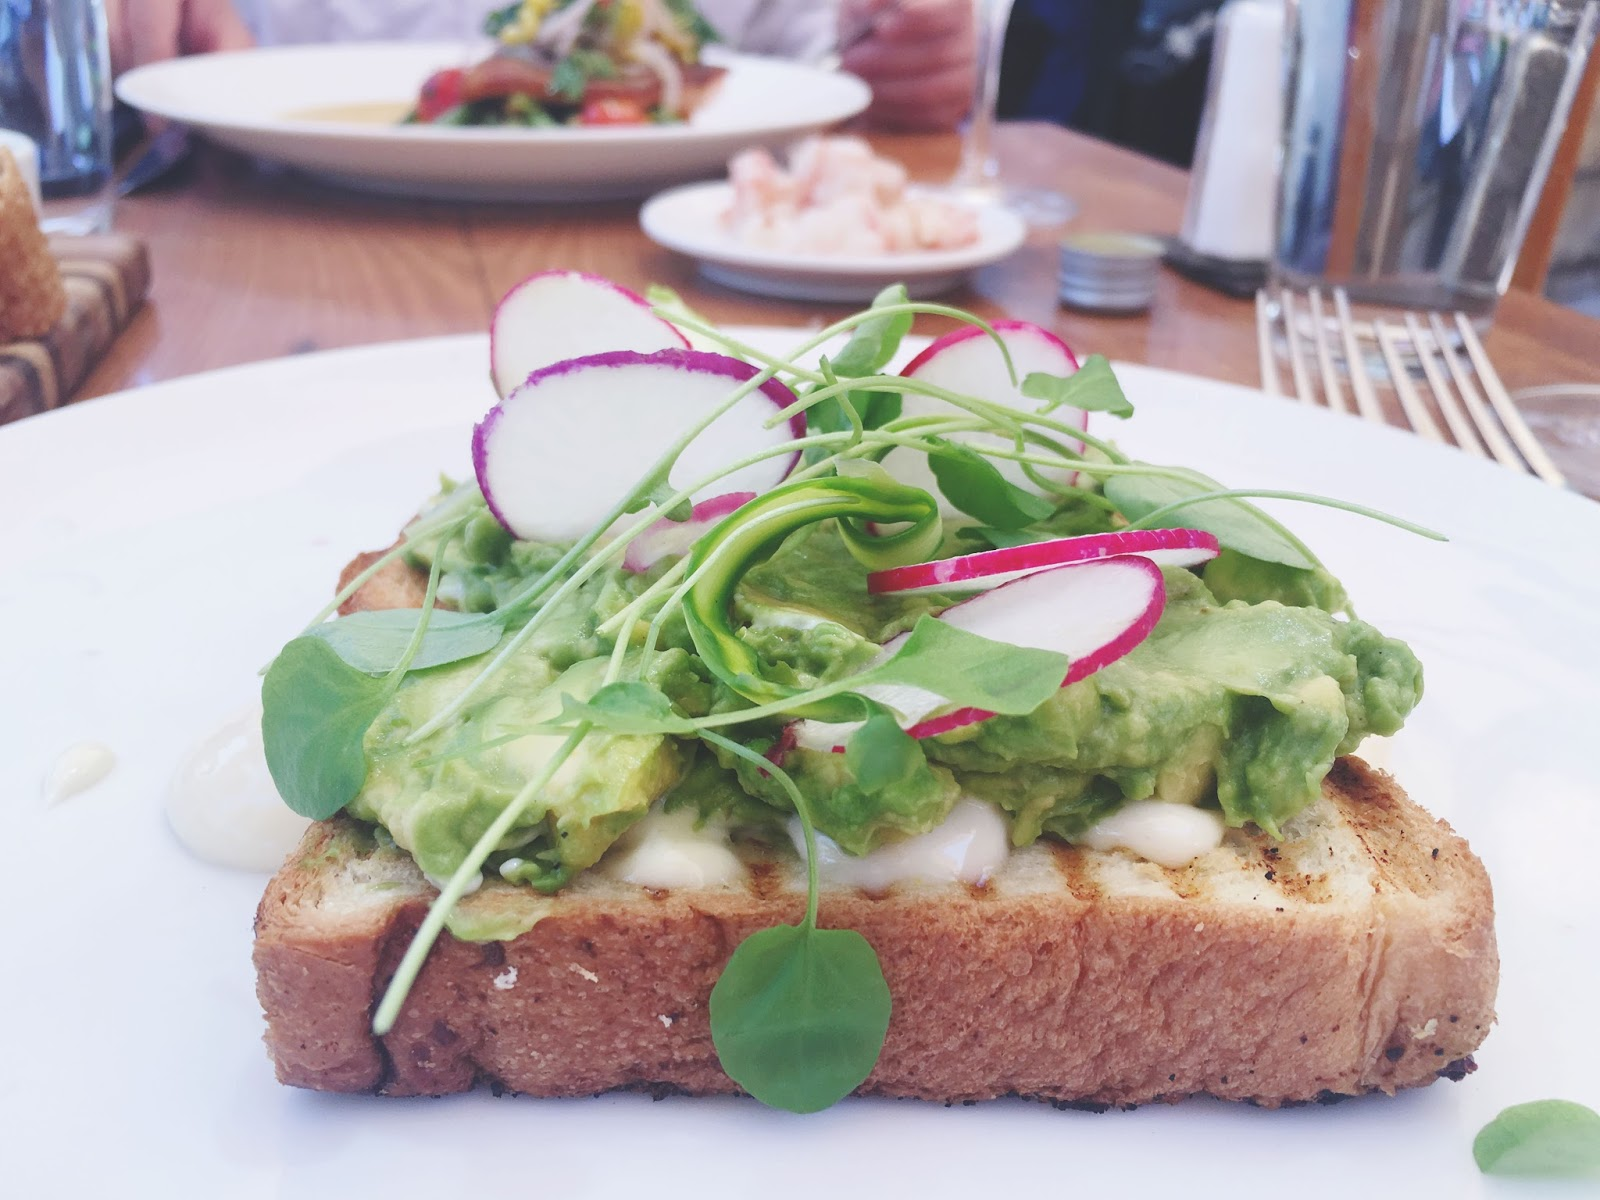 avocado toast at The Girl and the Fig - A restaurant in Sonoma, California